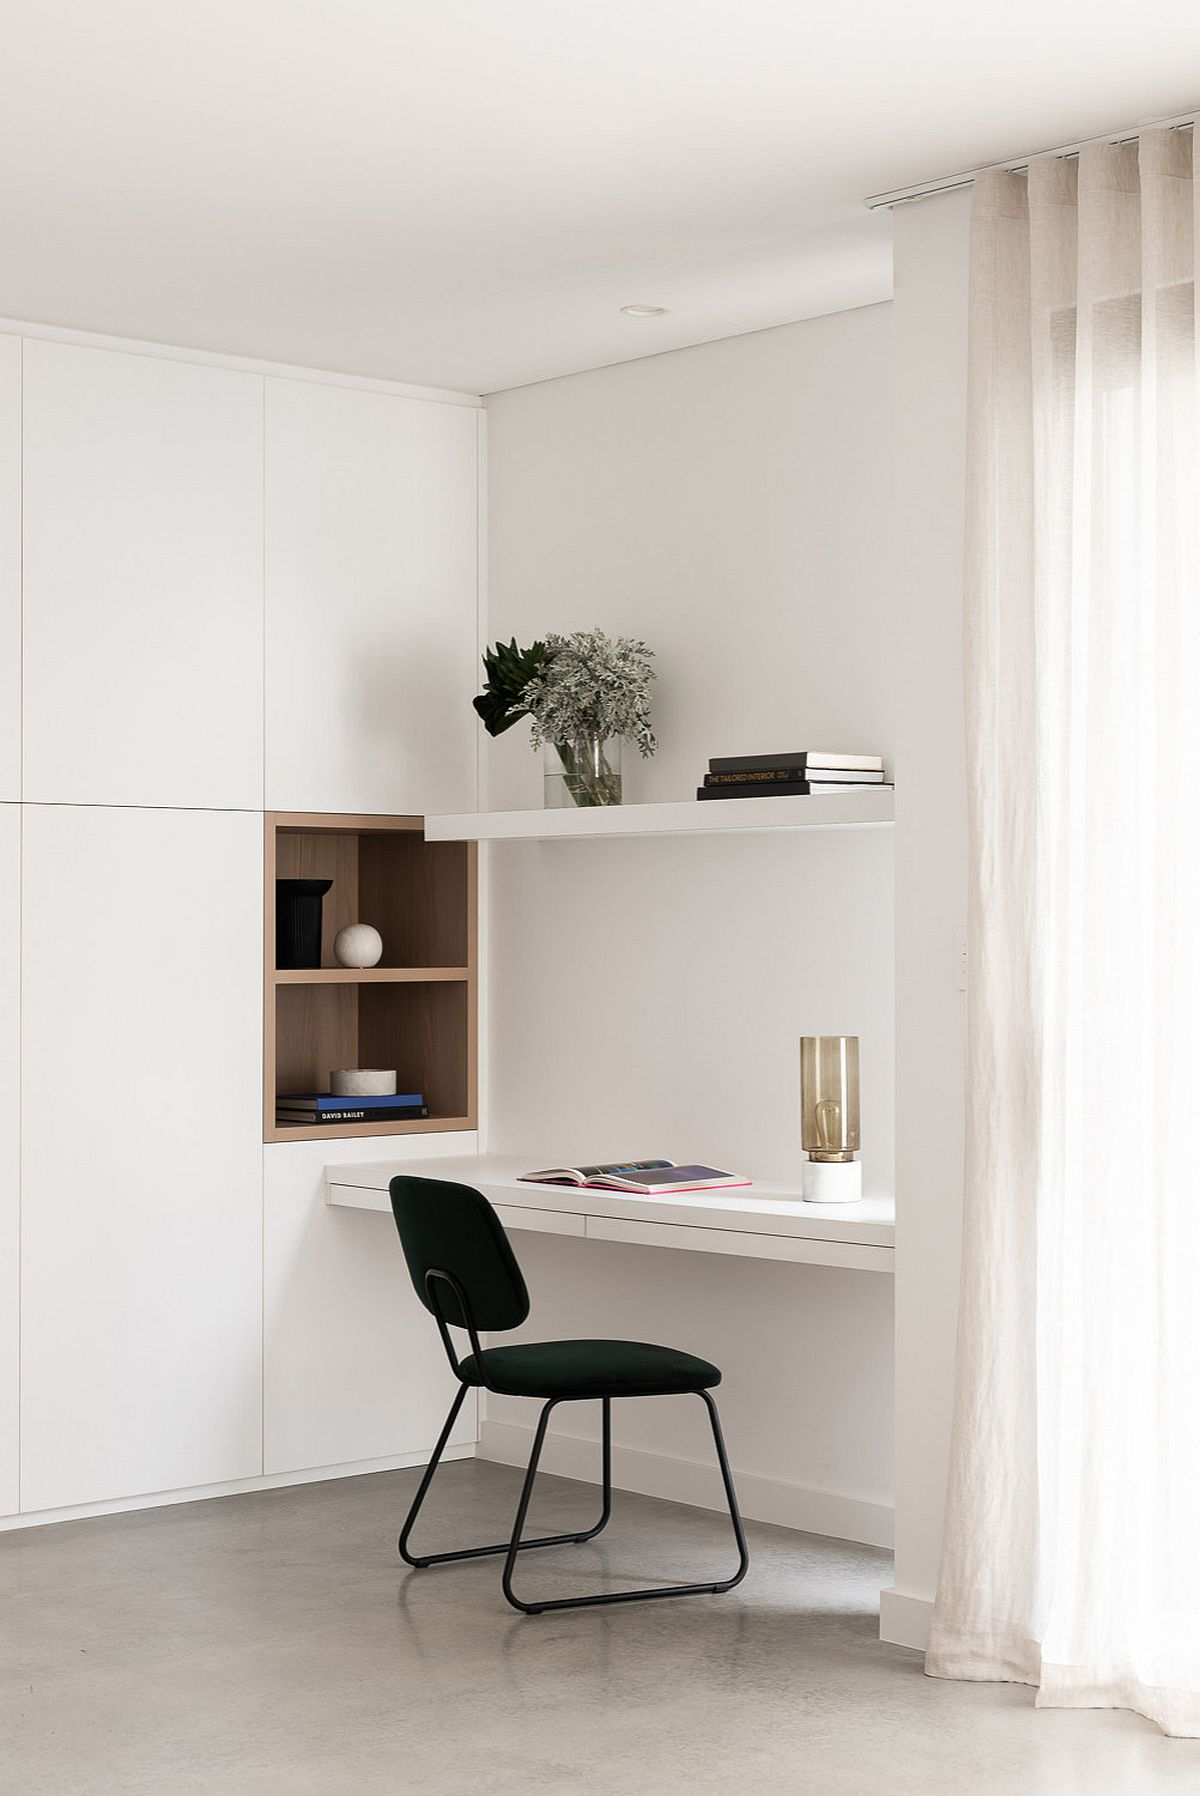 Tiny and minimal workspace in white with a dark chair that adds contrast